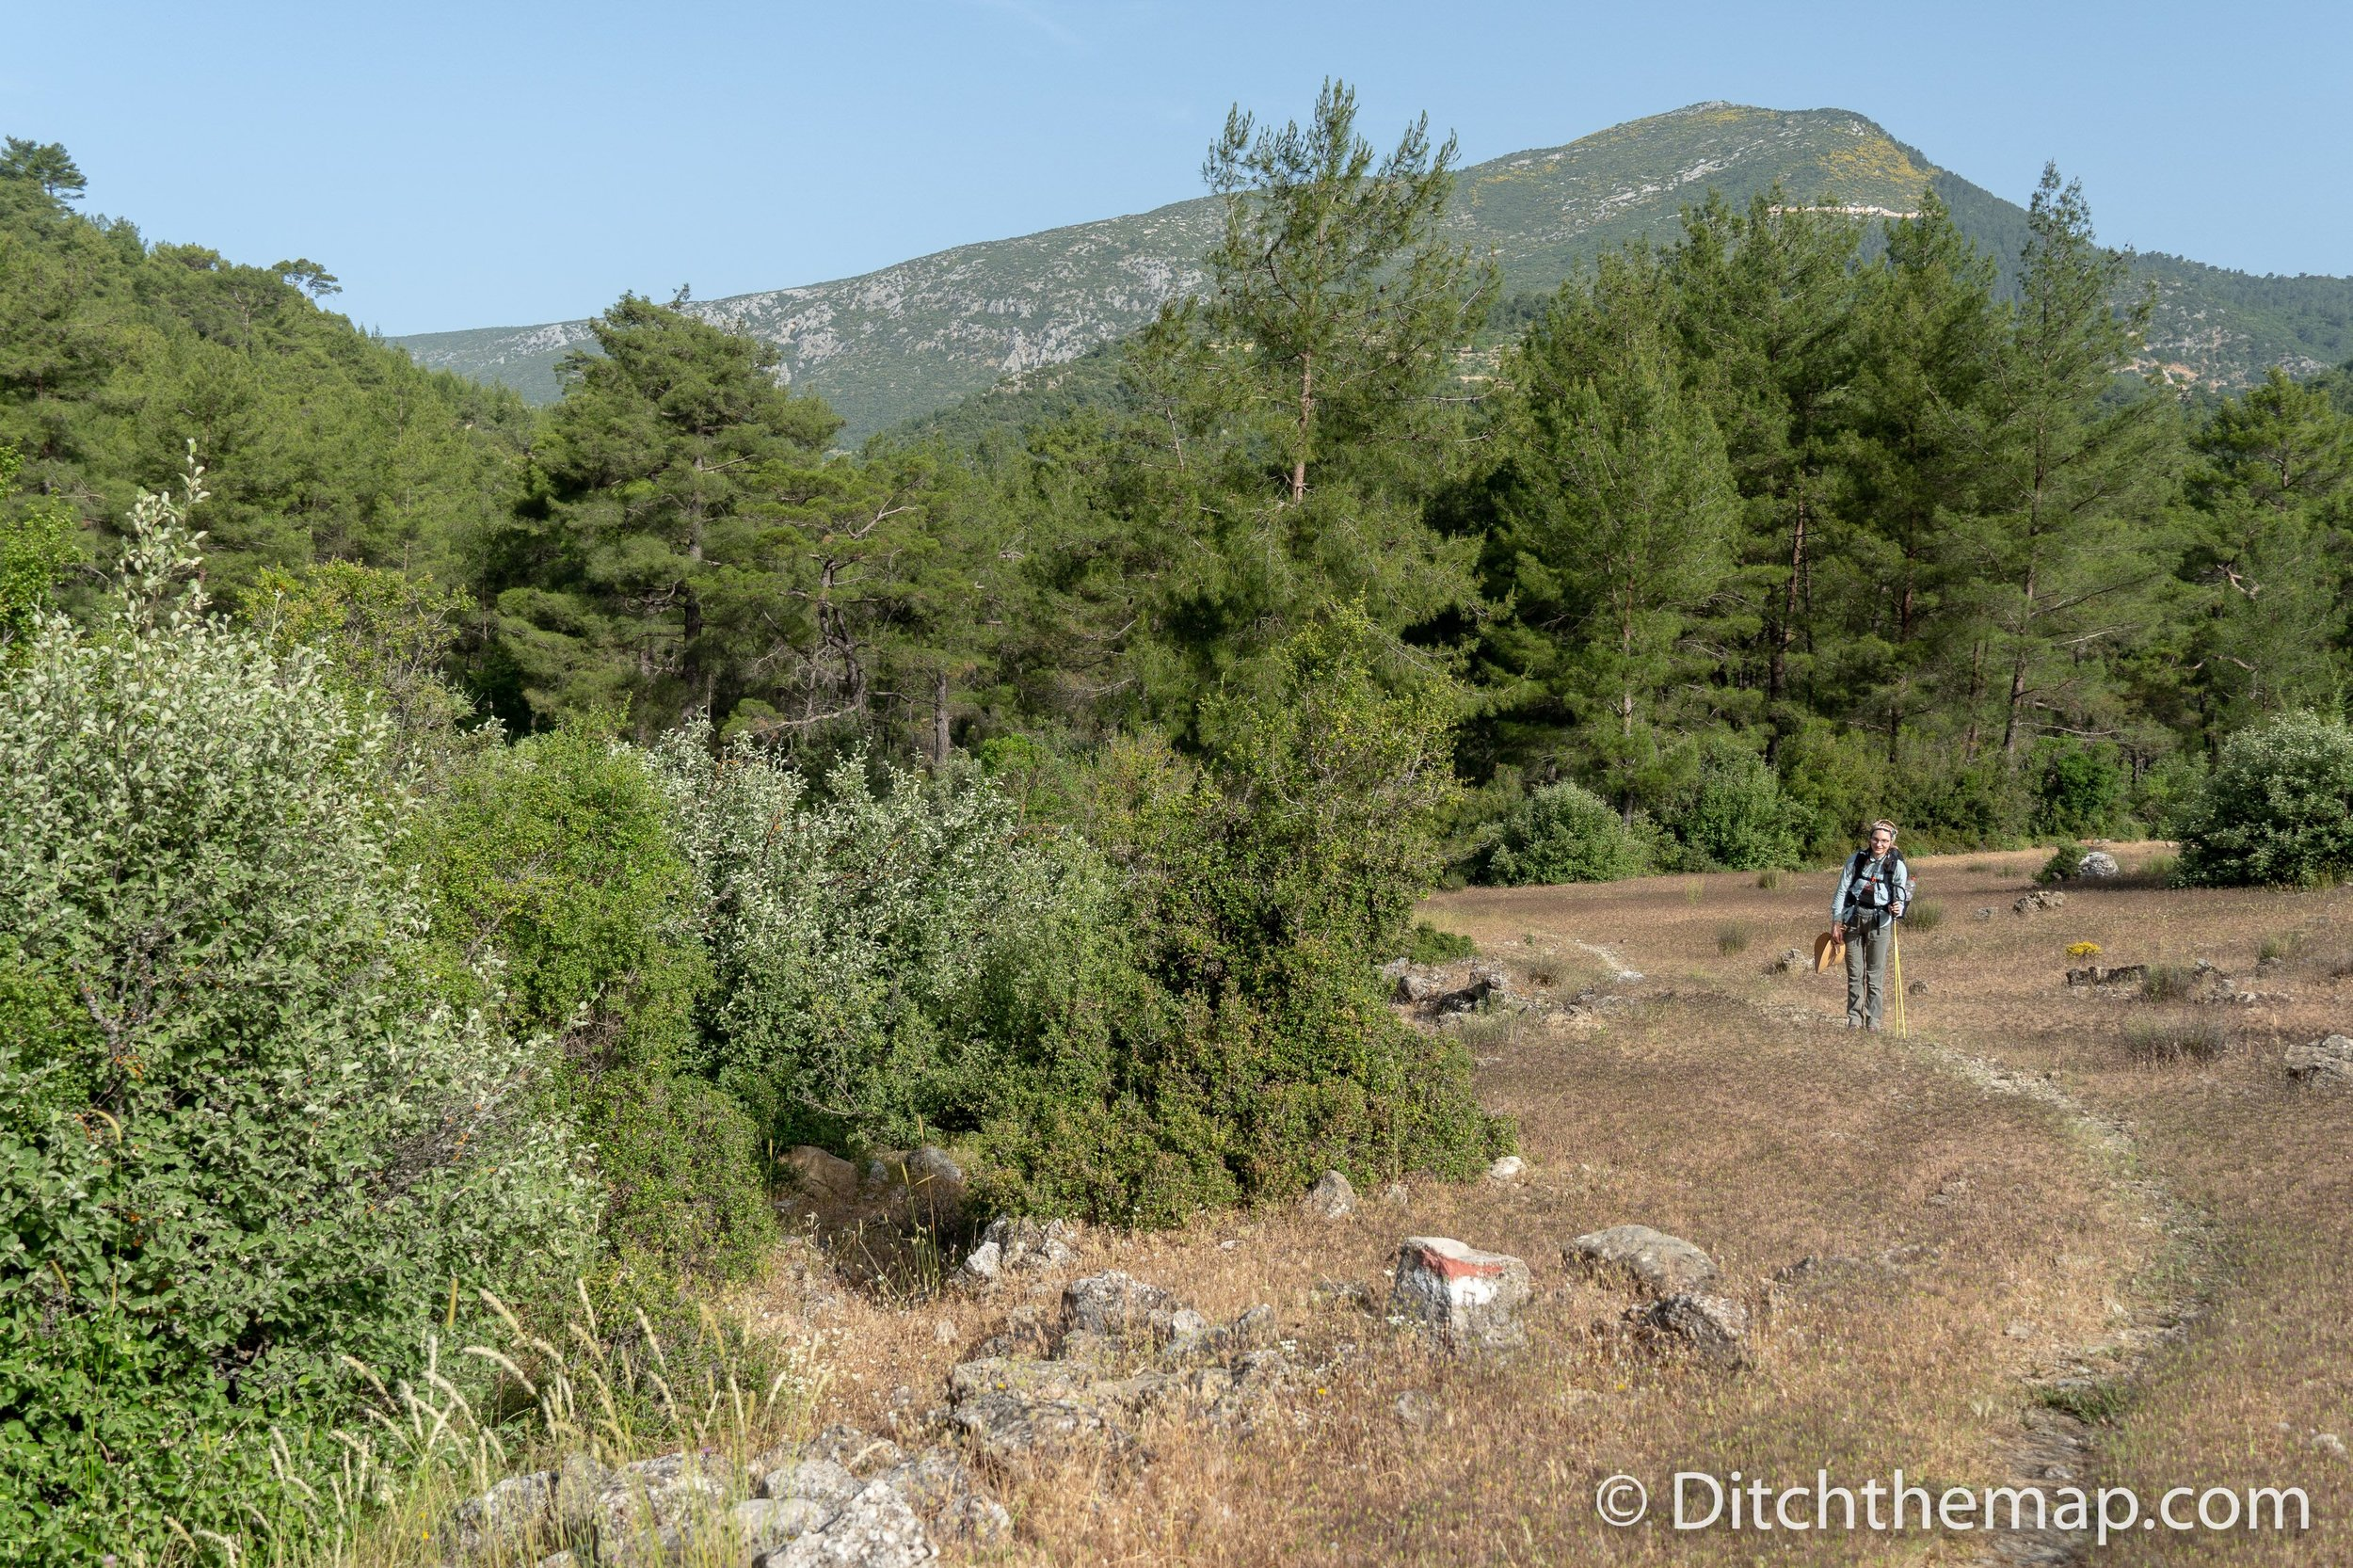 Emerging from a heavily forested uphill stretch on the lycian way